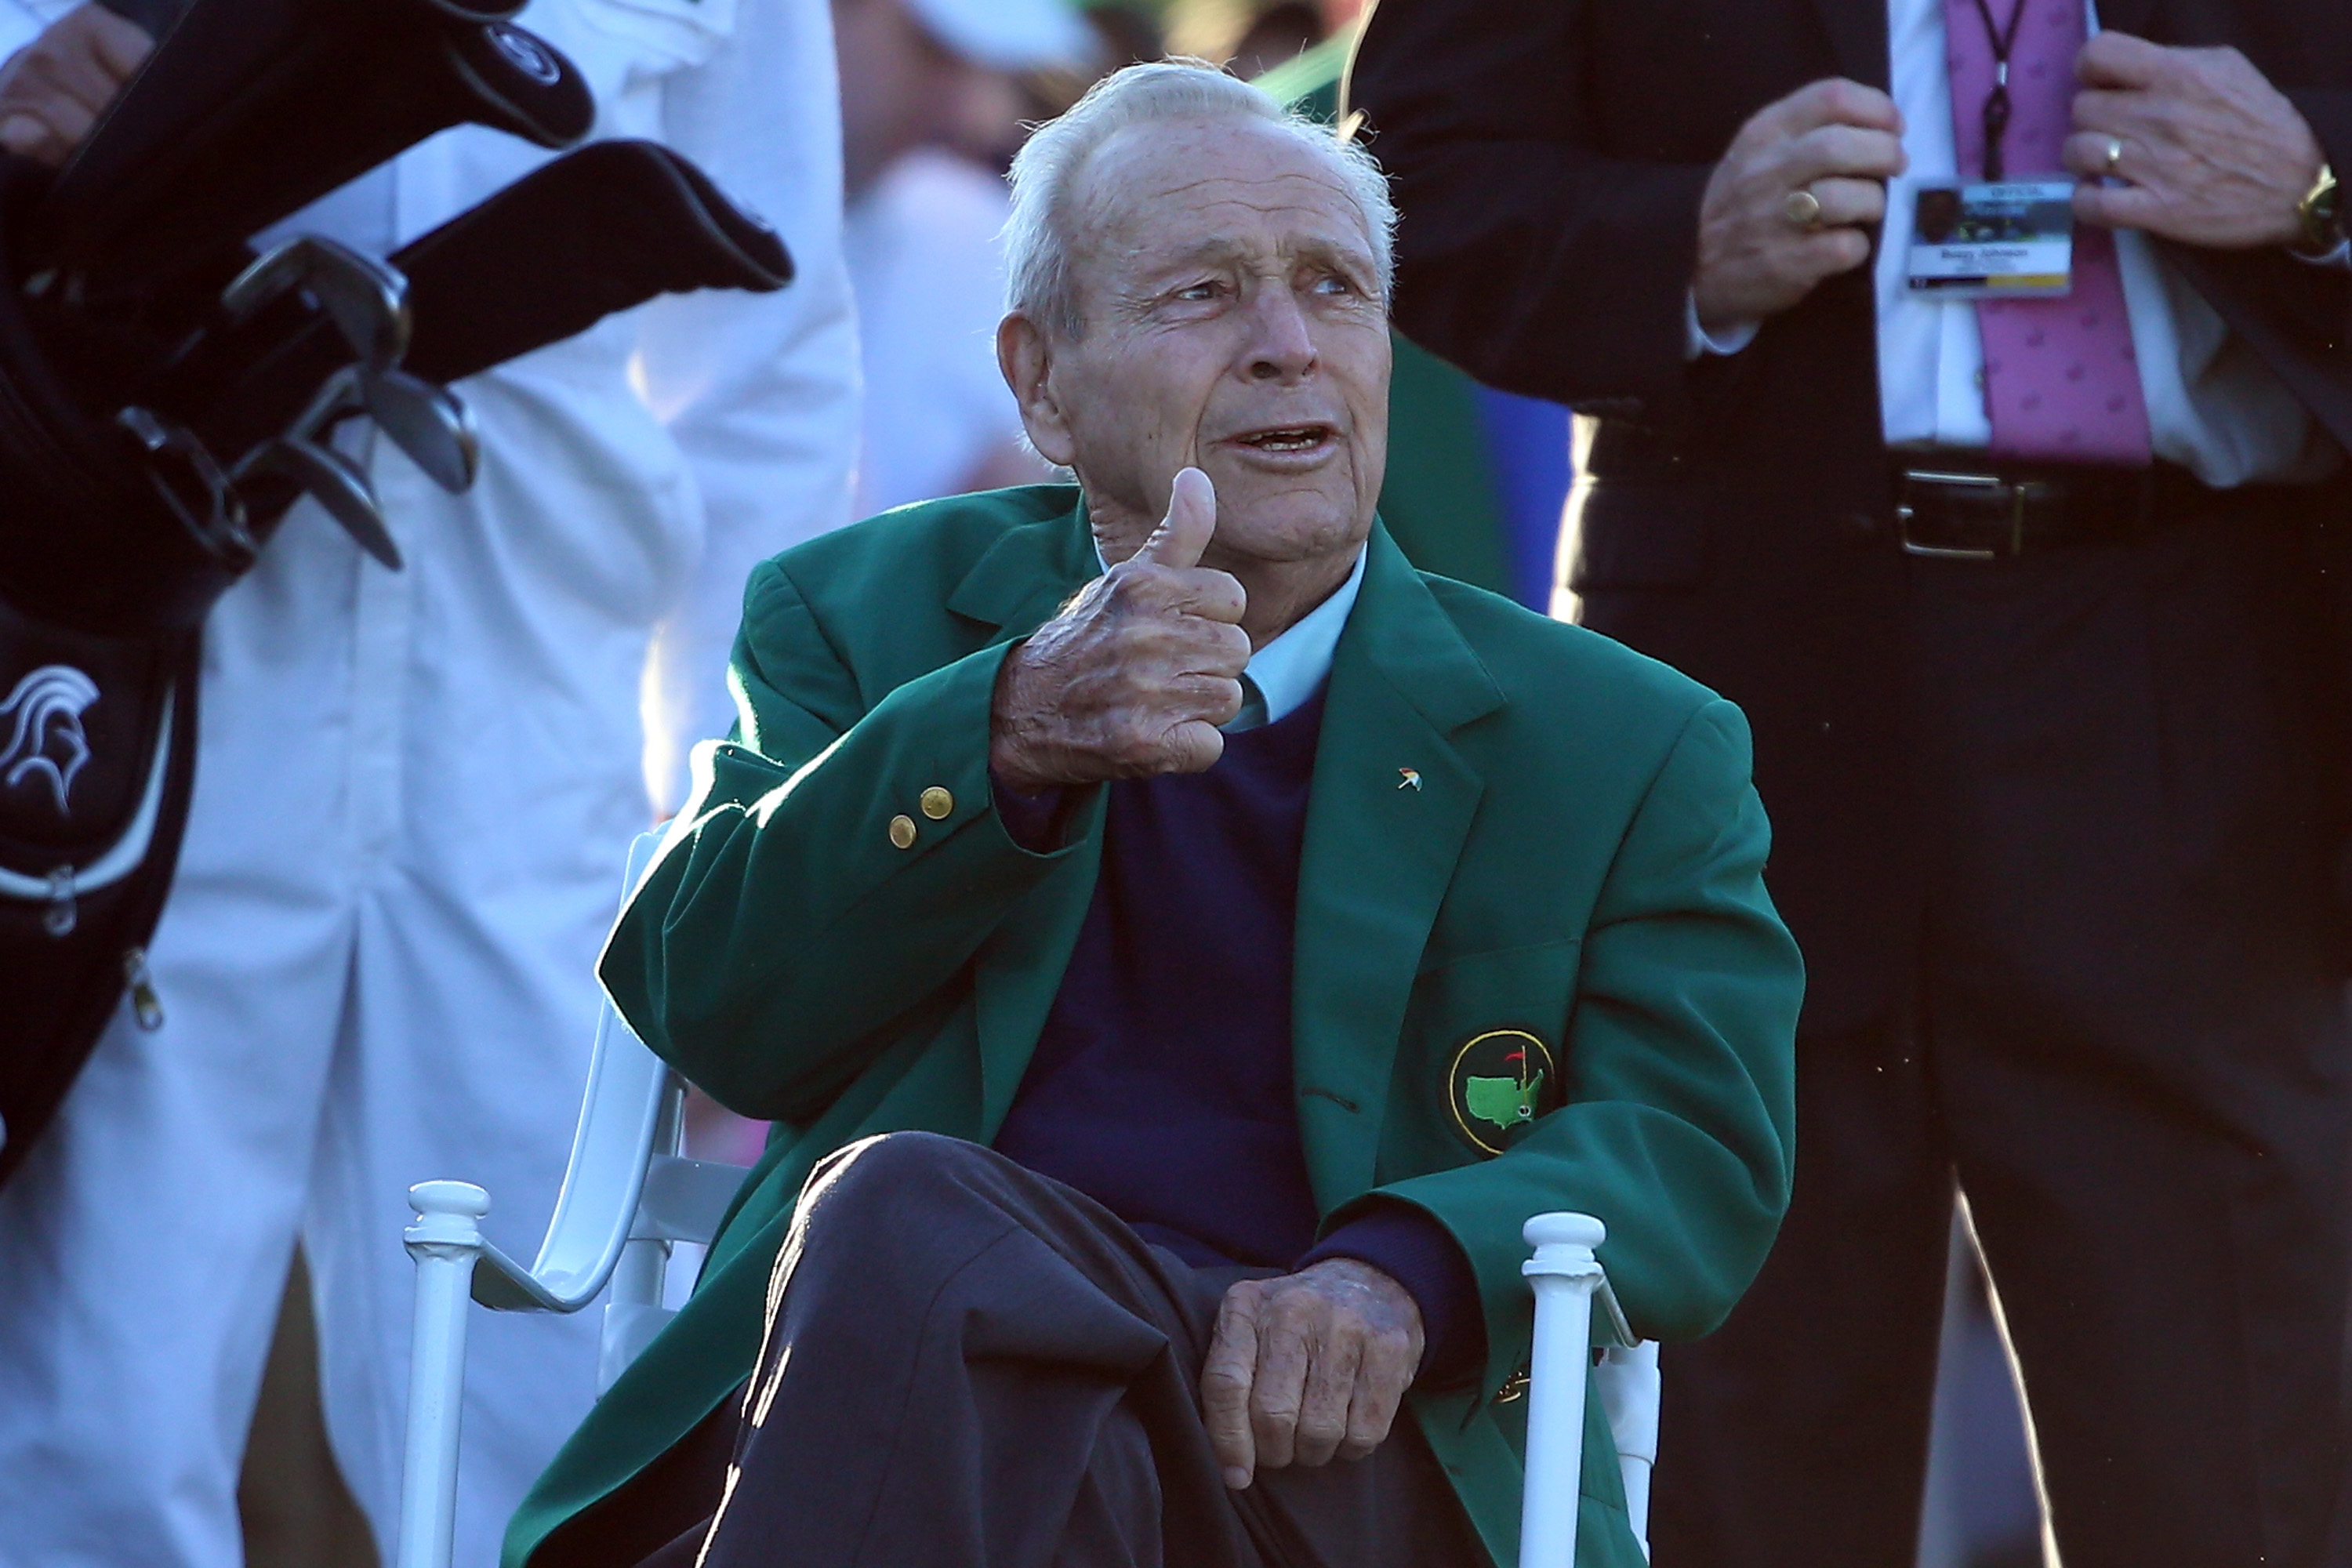 Honorary starter Arnold Palmer attends the ceremonial tee off to start the first round of the 2016 Masters Tournament at Augusta National Golf Club (Andrew Redington/Getty Images)